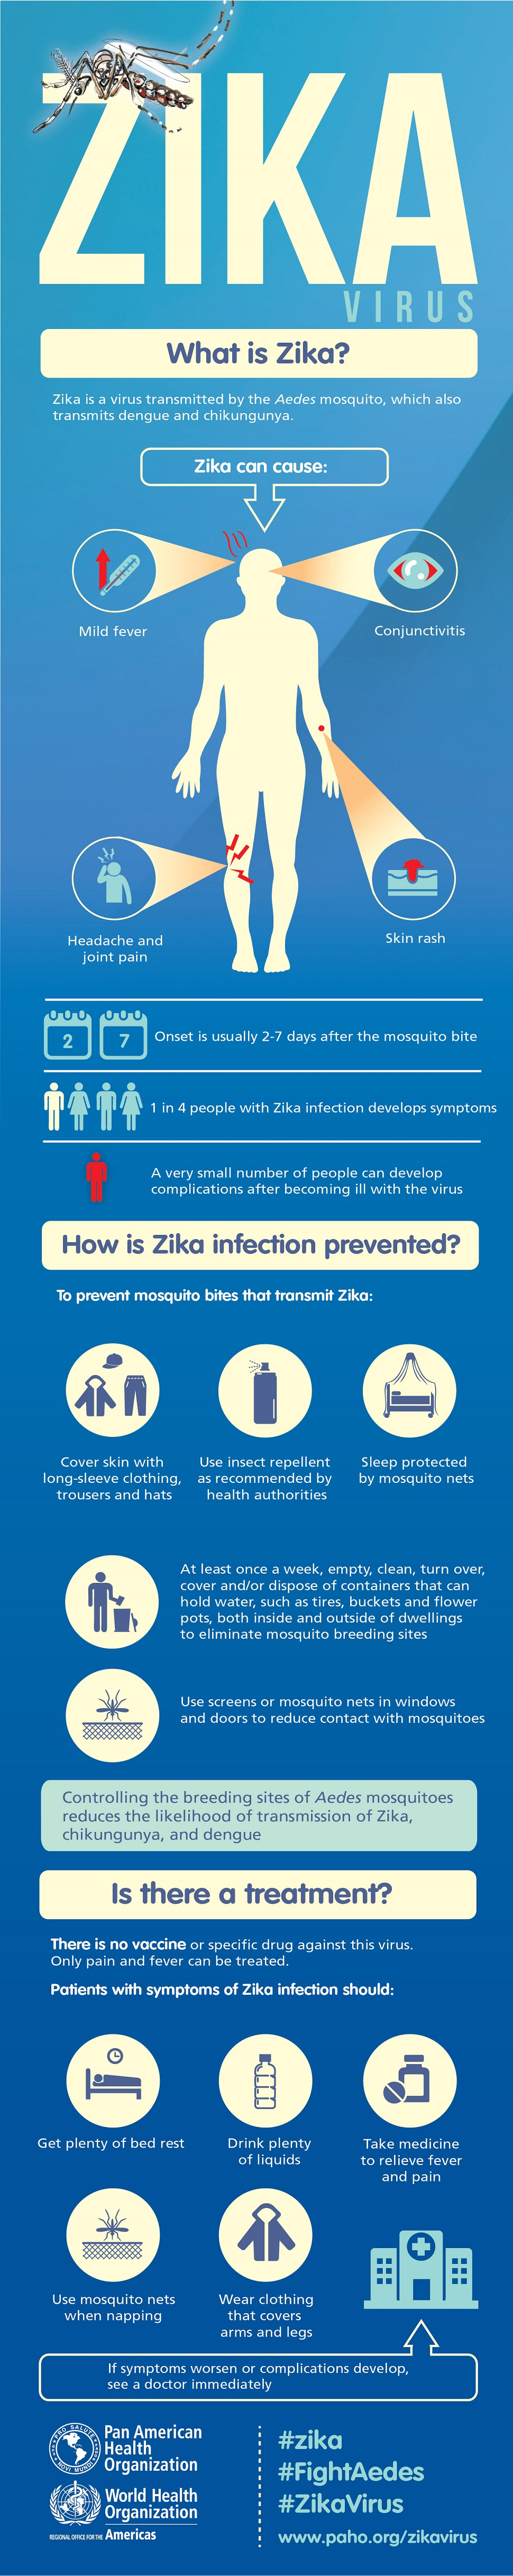 Infographic from Pan American Health organization and the World health Organization is titled Zika virus, with an illustration of a mosquito at the top. As you scroll down, the text reads: What is Zika? Pika is a virus transmitted by the Aedes mosquito, which also transmits dengue and chikungunya. Pika can cause, as illustrated on a human figure, Mild fever, conjunctivitis, headache and joint pain, skin rash. Calendar icons illustrate that Onset is usually 2 to 7 days after the mosquito bite. Human figures illustrate that 1 in 4 people with Zika infection develops symptoms. A very small number of people can develop complications after becoming ill with the virus, Larger text reads: How is Zika infection prevented? To prevent mosquitos bites that transmit Zika: Illustrations accompany each section of text that reads: Cover skin with long-sleeve clothing , trousers and hats. Use insect repellent as recommended by health authorities. Sleep protected by mosquito nets. At least once a week, empty, clean, turnover. cover and/or dispose of containers that can hold water, such as tires, buckets and flower pots, both inside and outside of dwellings to eliminate mosquito breeding sites. Use screens or mosquito nets in windows and doors to reduce contact with mosquitoes. Controlling the breeding sites of Aedes mosquitoes reduces the likelihood of transmission of Zika, Chikungunya and Dengue. Scrolling further shows large text that reads: Is there a treatment? There is no vaccine or specific drug against this virus. Only pain and fever can be treated. Patients with symptoms of Zika infection should: (graphical icons accompany text) Get plenty of bed rest; drink plenty of liquids; take medicine to relieve fever and pain; use mosquito nets when napping; swear clothing that covers arms and legs. If symptoms worsen or complications develop, see a doctor immediately. Logos of the Pan American Health organization and World health Organization flank hostages such as #Zika, @FightAedes